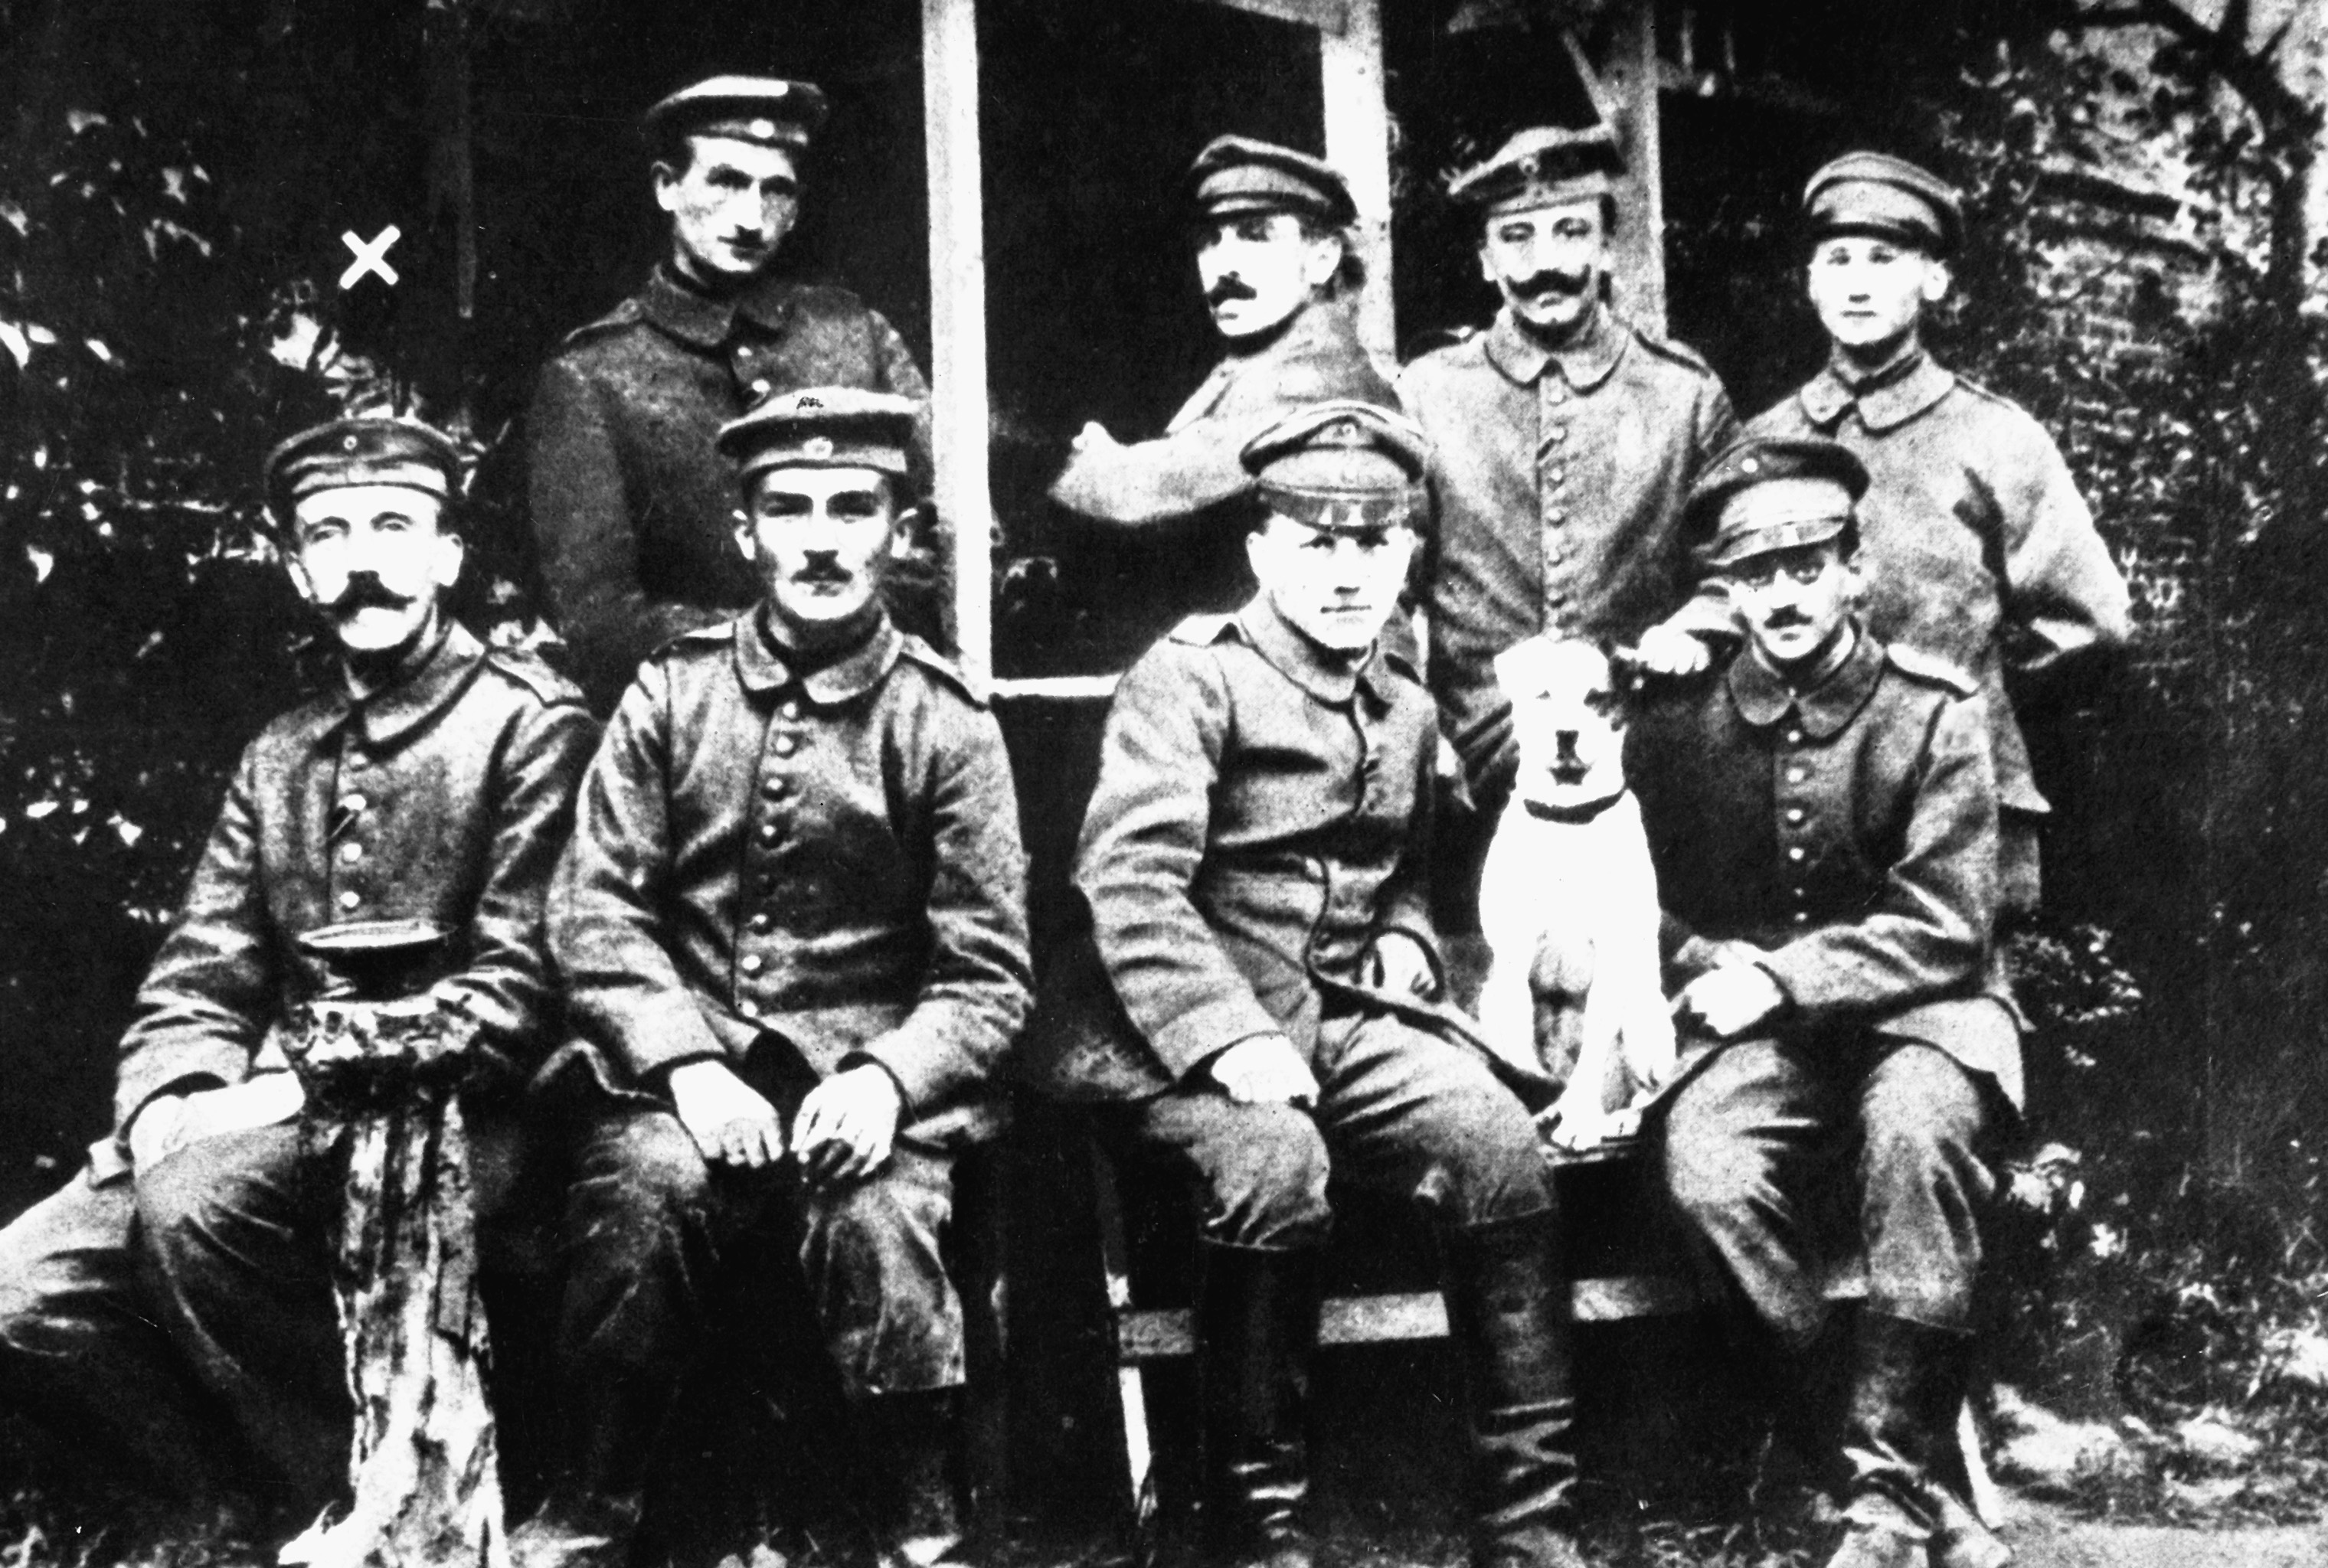 hitler_with_other_german_soldiers.jpg